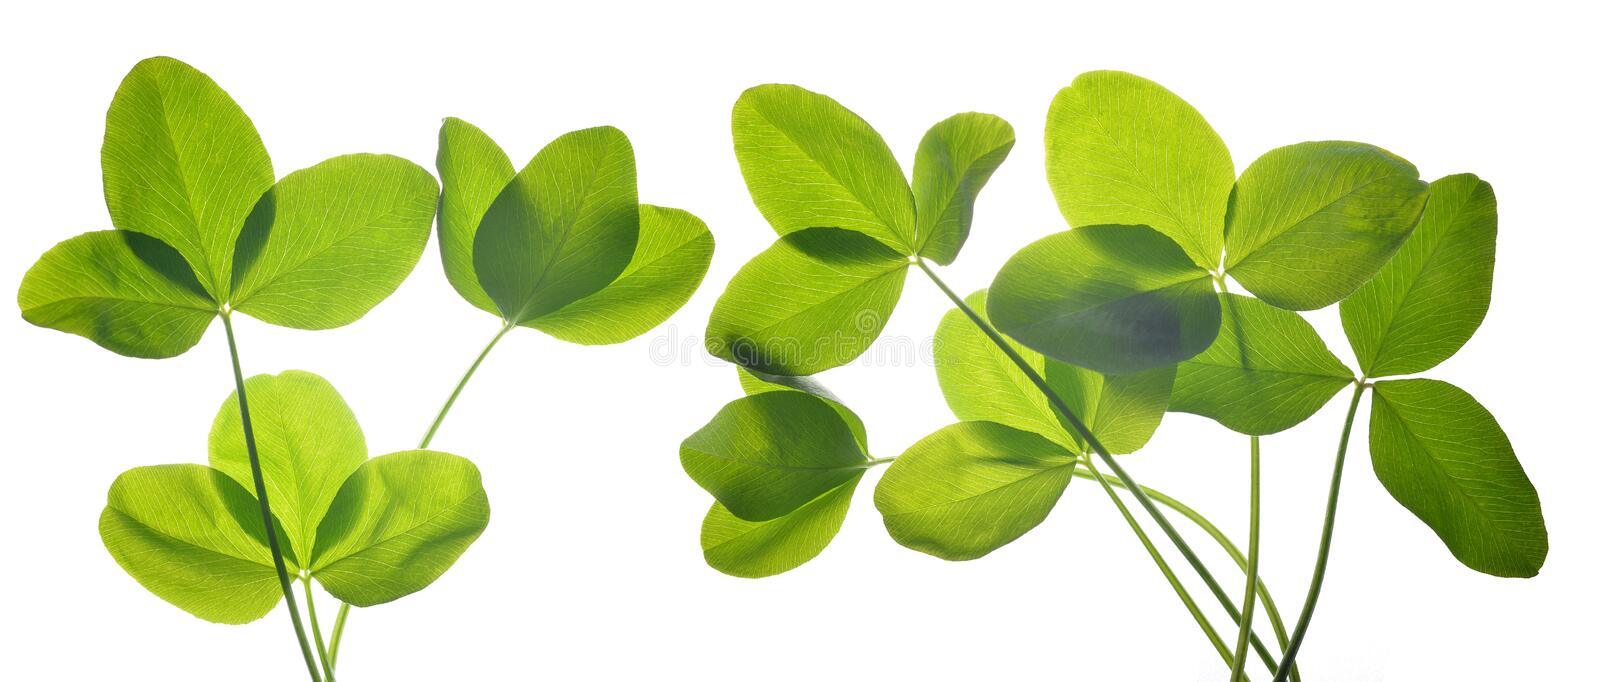 Fresh green leaves of clover. stock photography